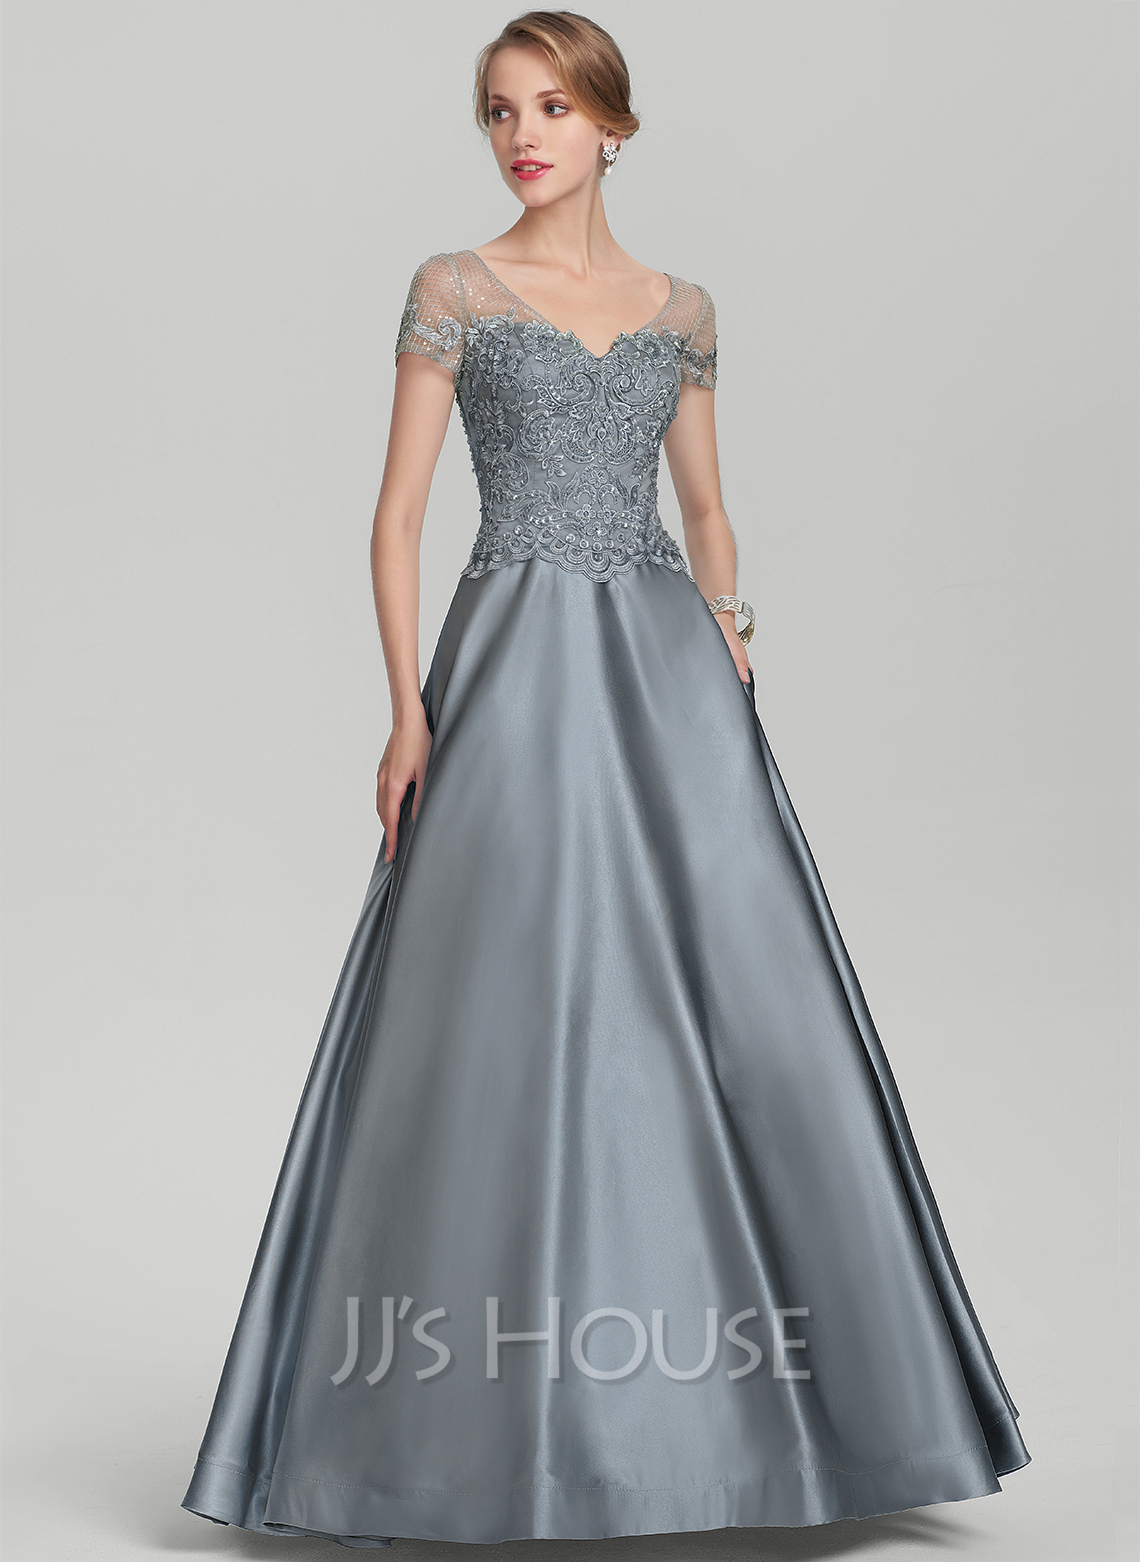 A-Line V-neck Floor-Length Satin Lace Mother of the Bride Dress With Beading Sequins